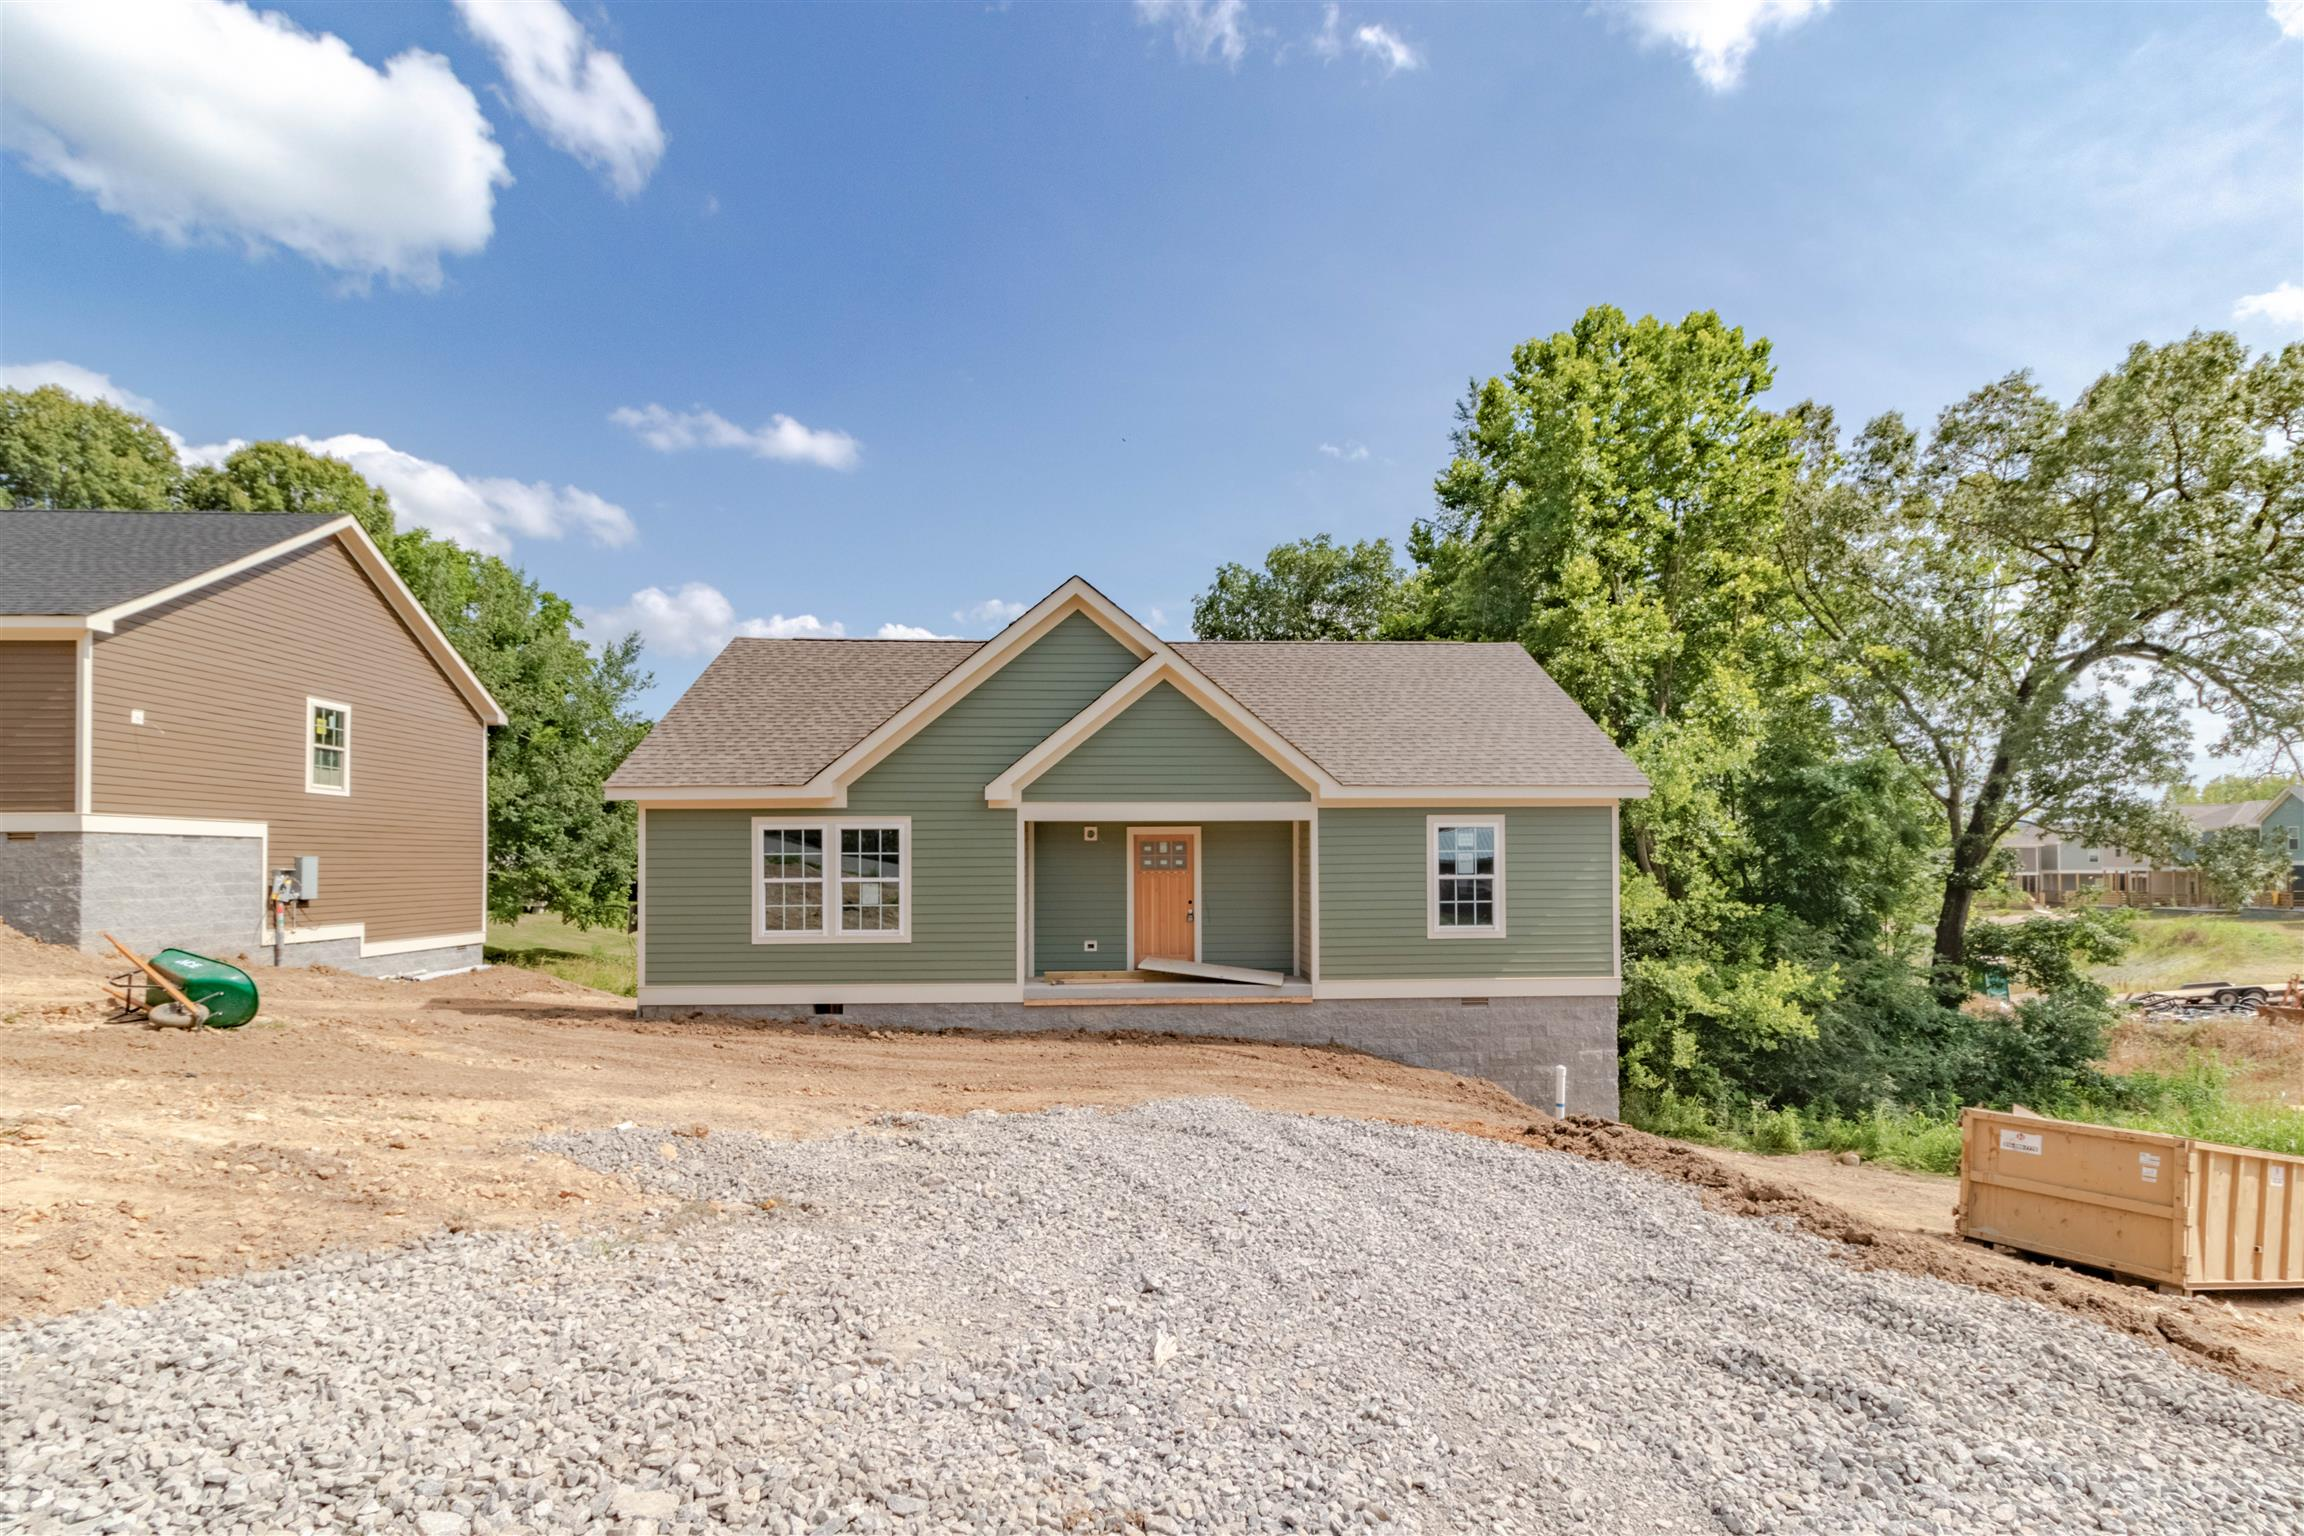 120 Boyd St, Ashland City, TN 37015 - Ashland City, TN real estate listing